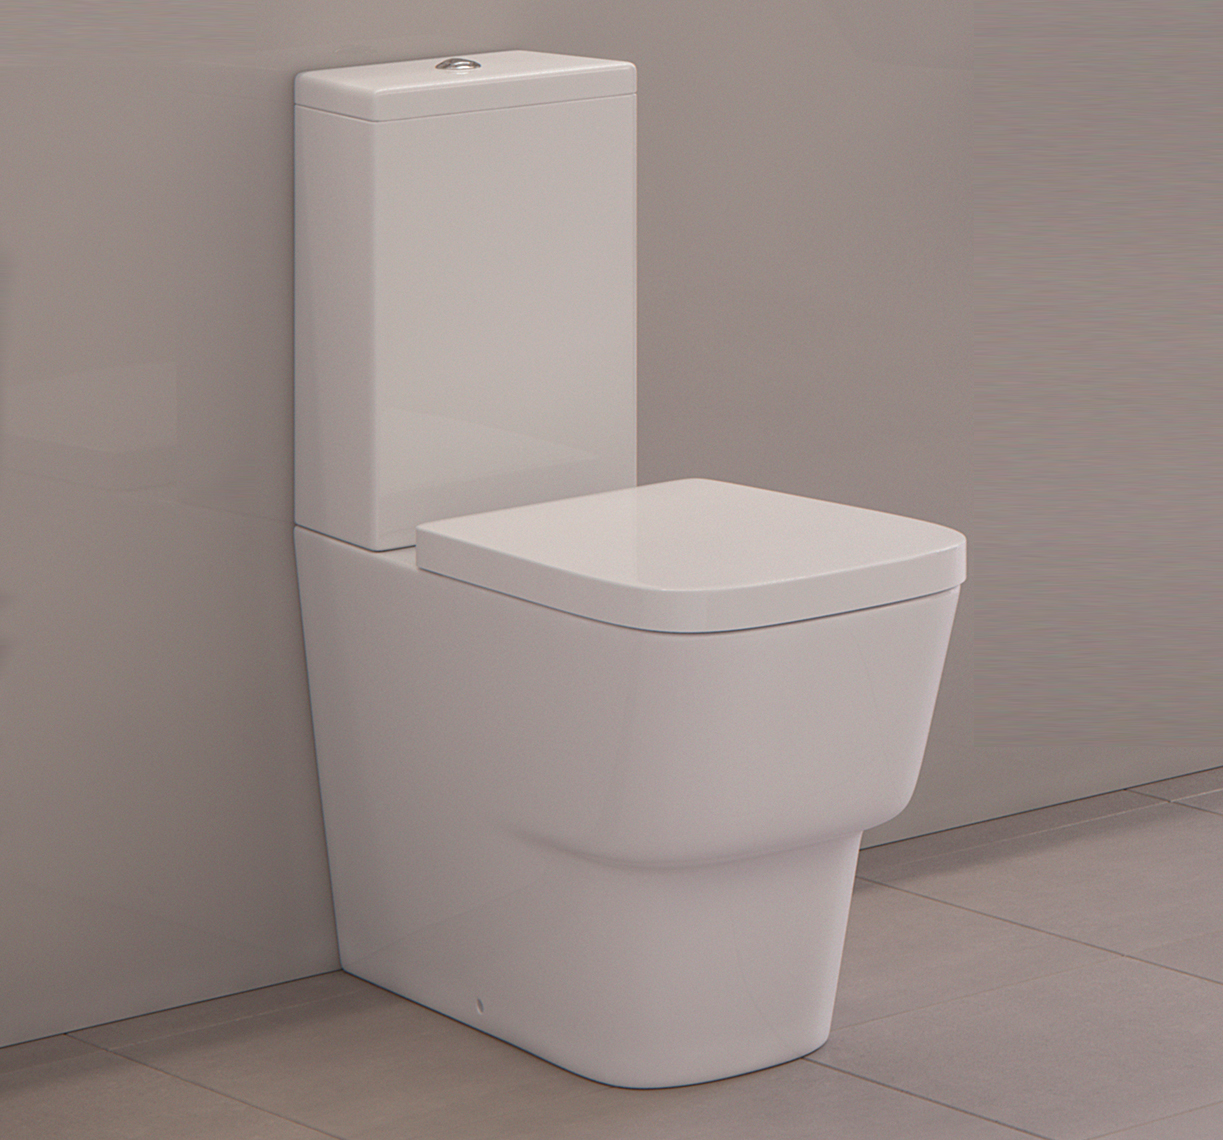 Bathroom toilets for sale bella bathrooms for Small toilet